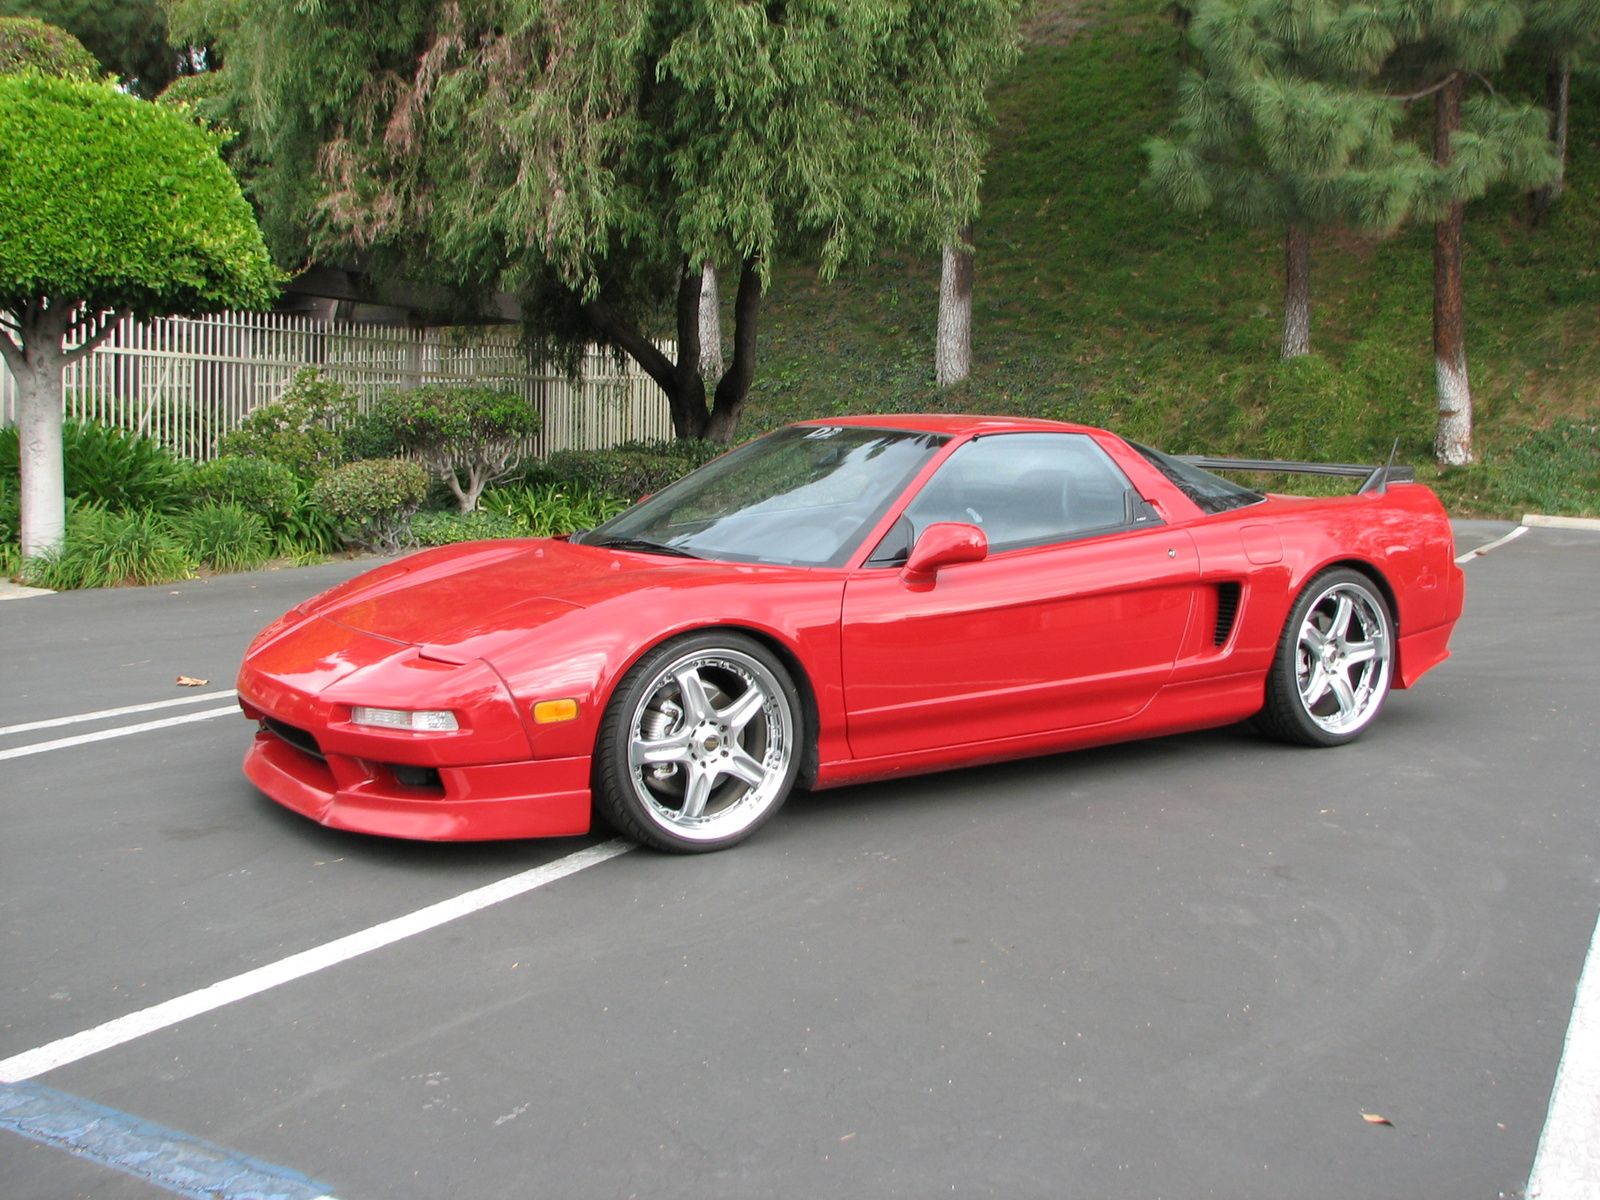 VWVortex.com - Which one of these older sports cars would you buy?